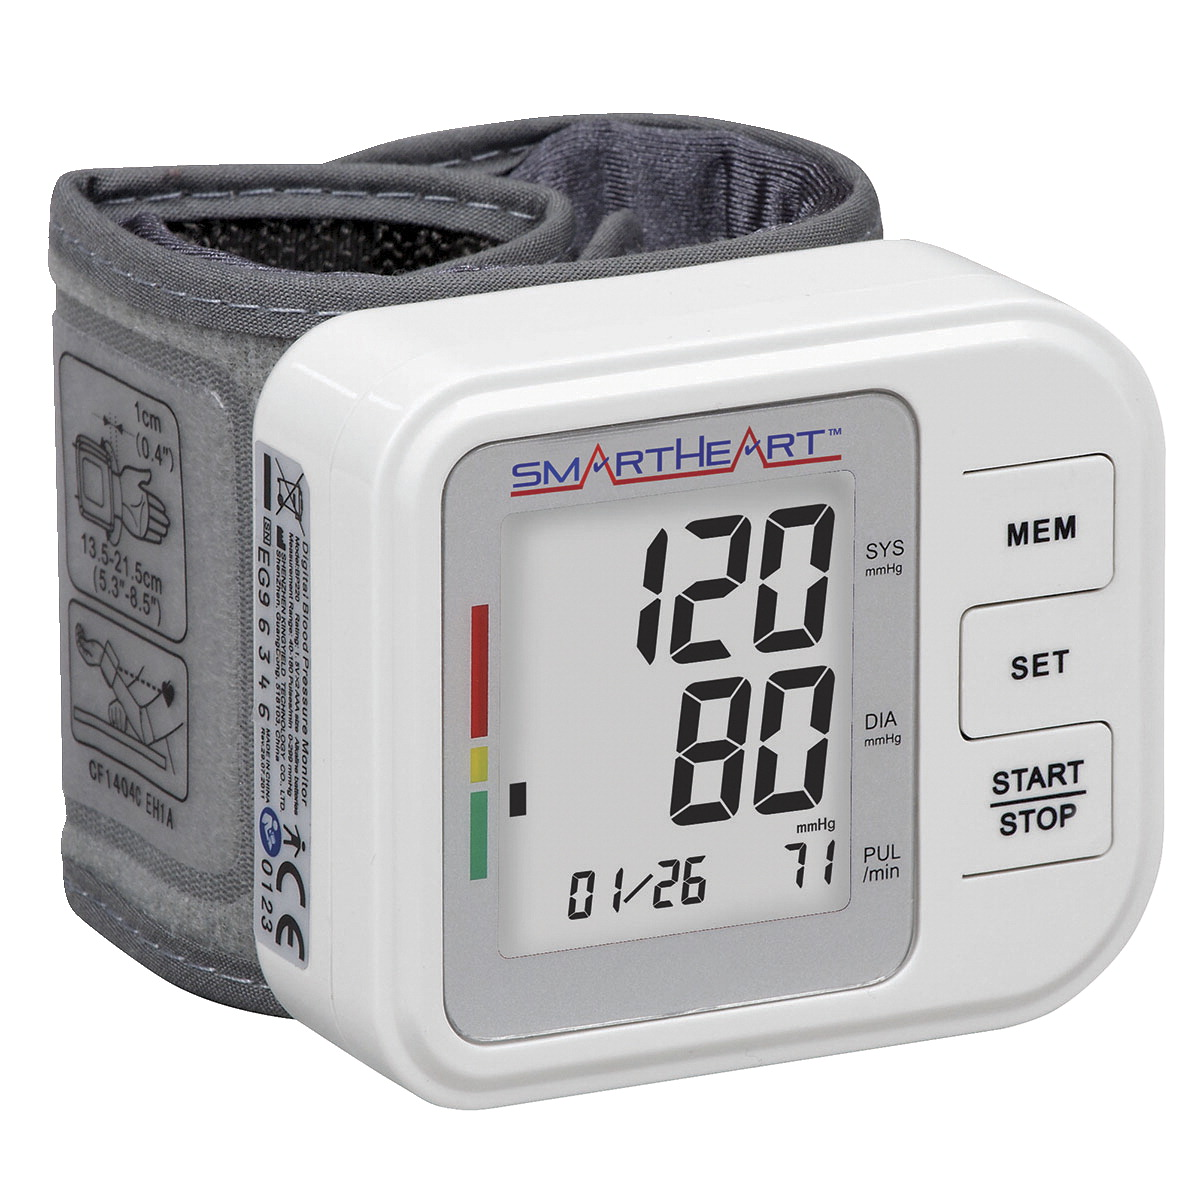 Baseline Blood Pressure and Pulse Monitor Wrist Watch